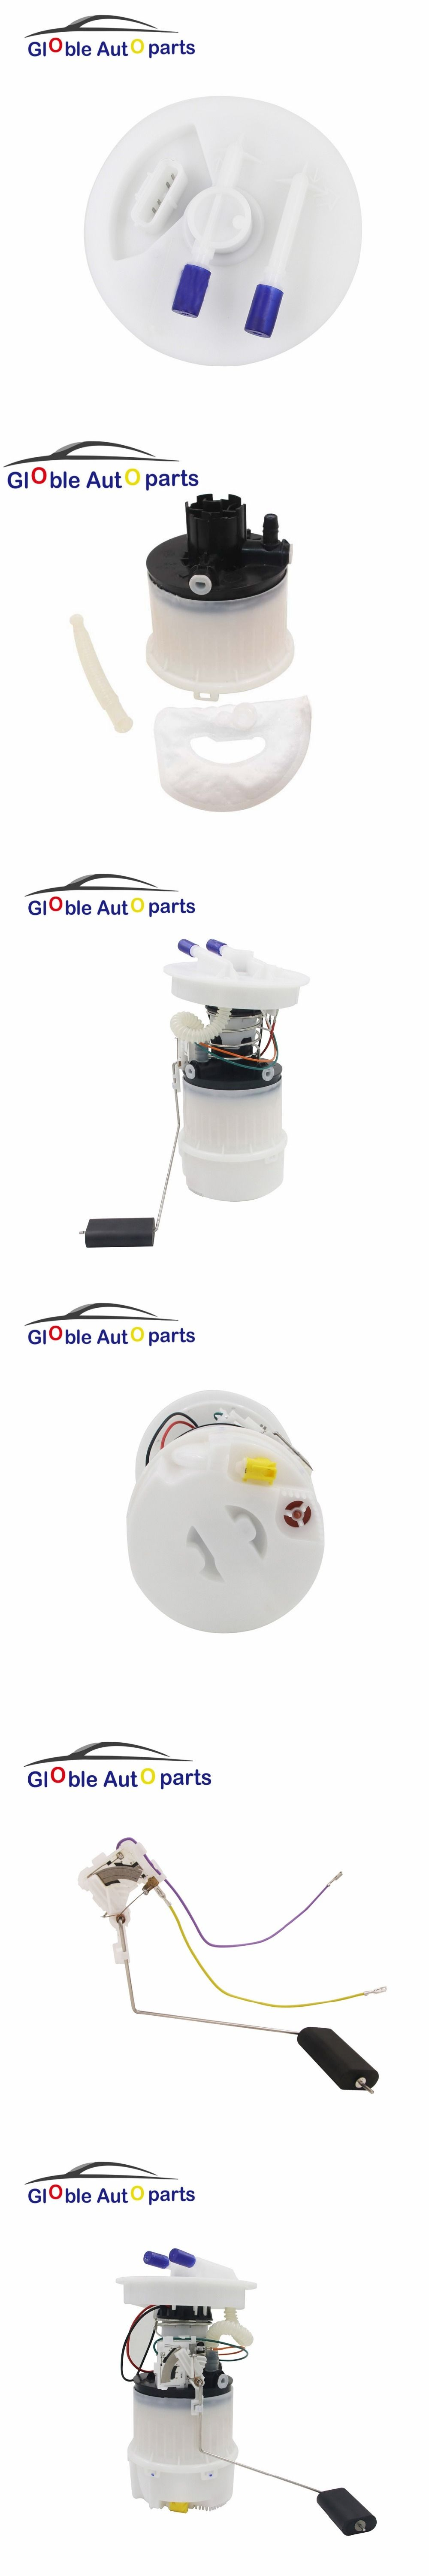 For Car Ford C Max Focus Ii Mazda 3 Electric Intank Fuel Filter